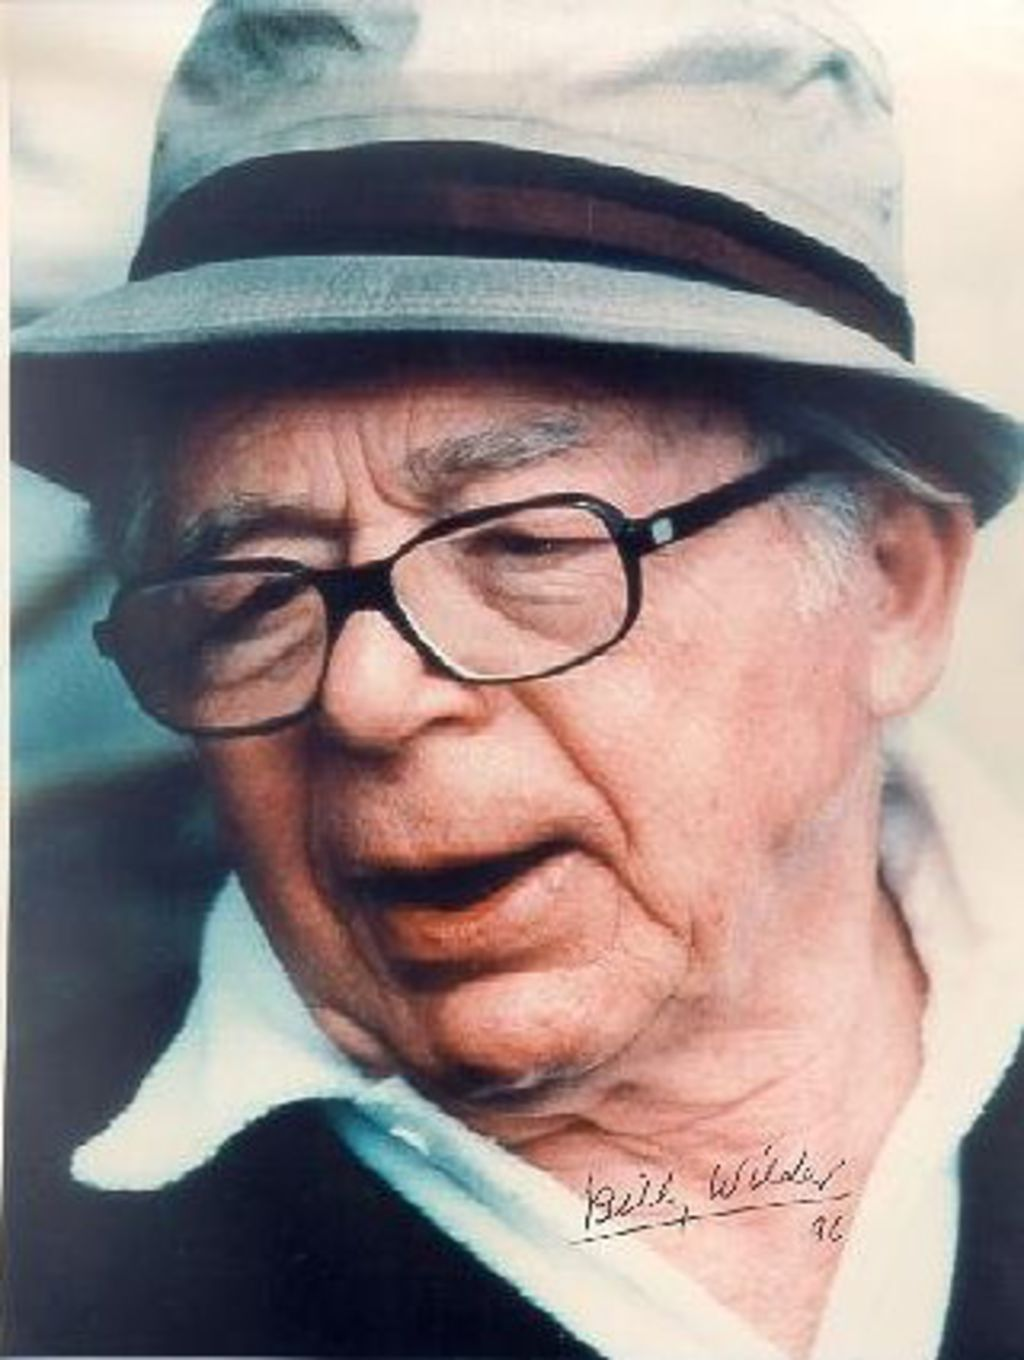 billy wilder wiki